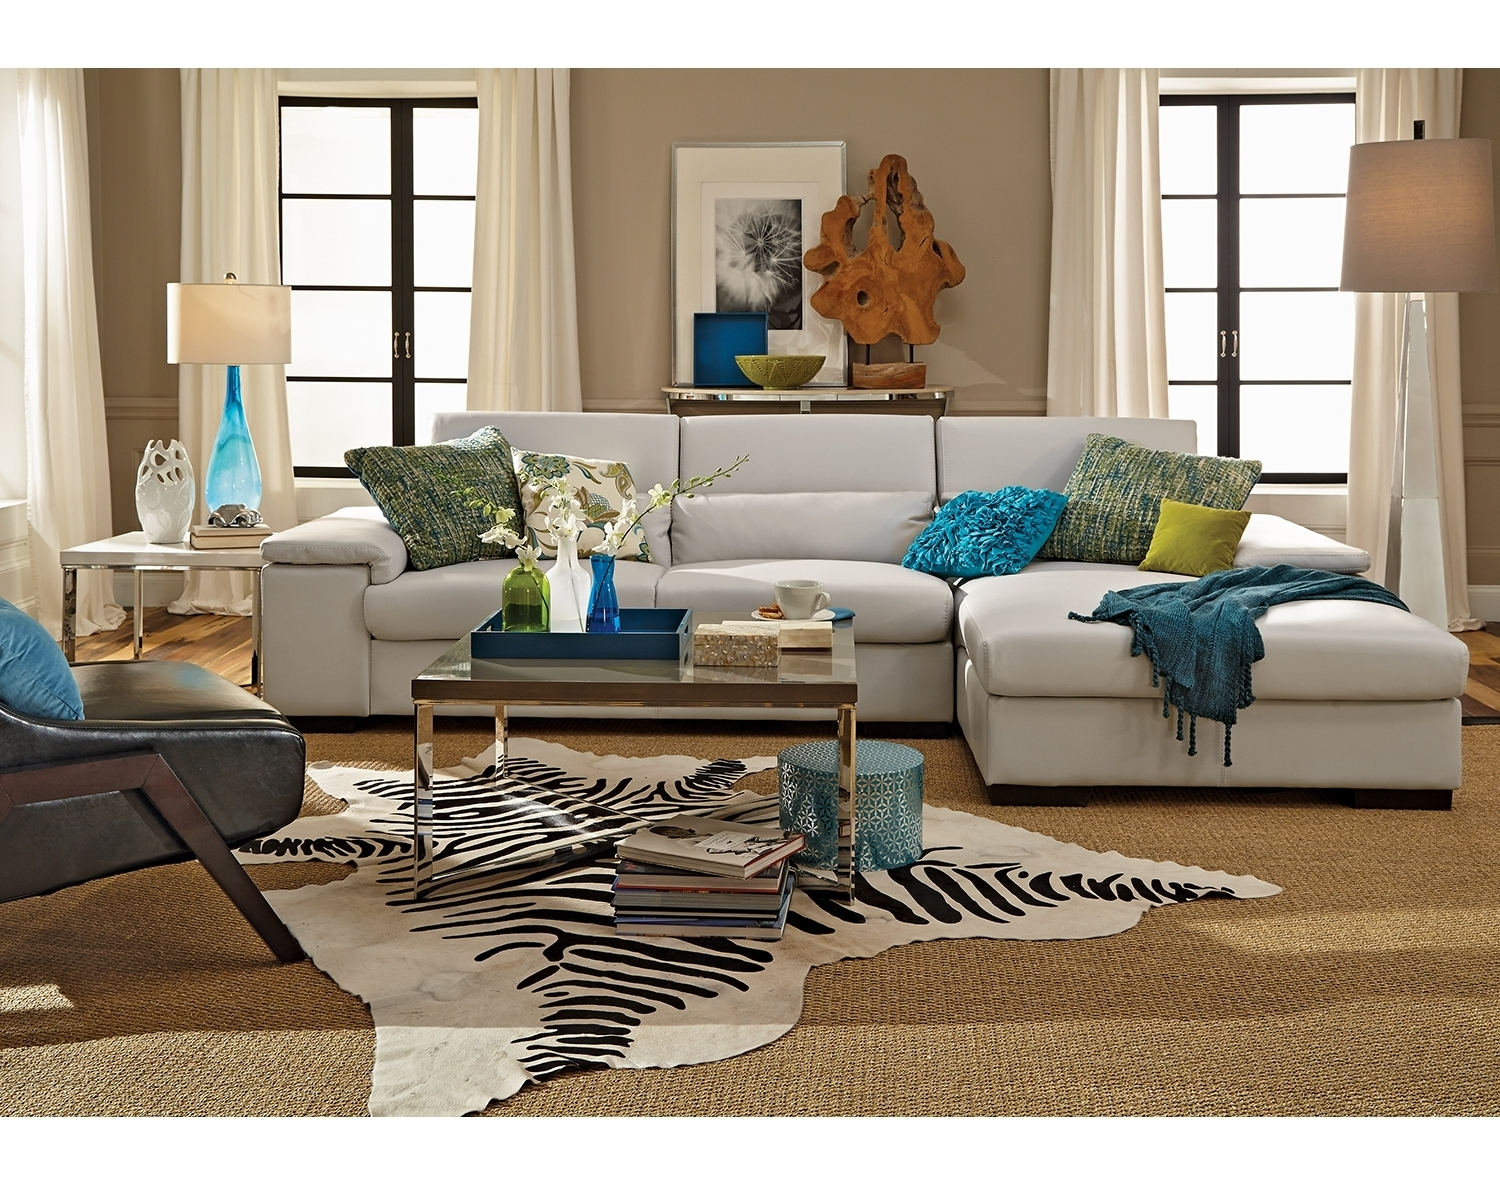 Homeroom Furniture Kansas City Gaines Outlet Throughout Cur Sectional Sofas View